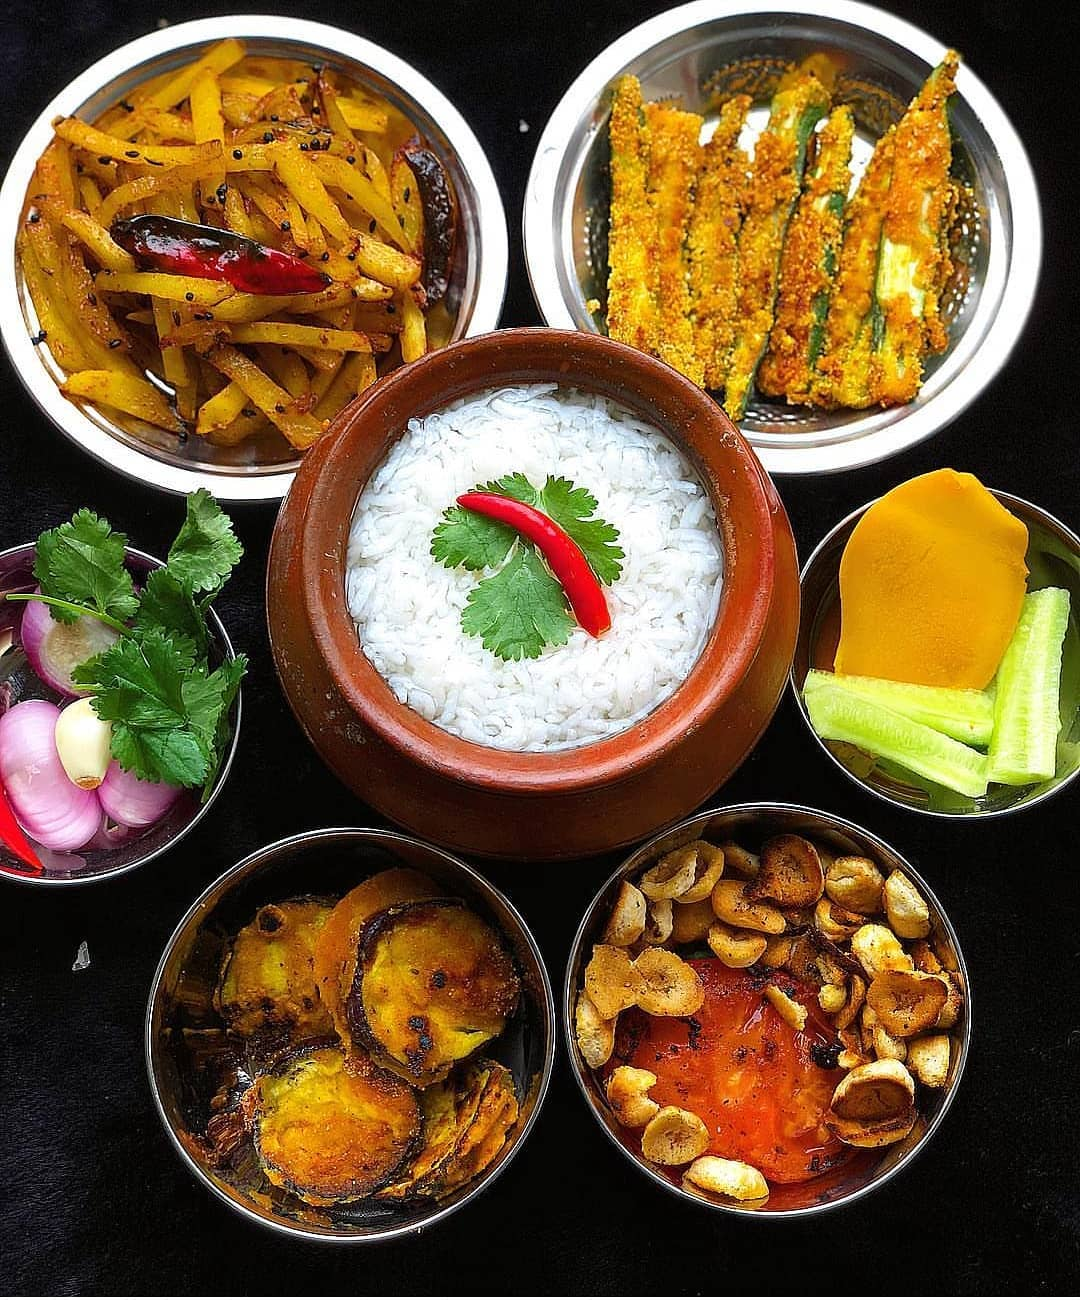 foods of Bhubaneswar